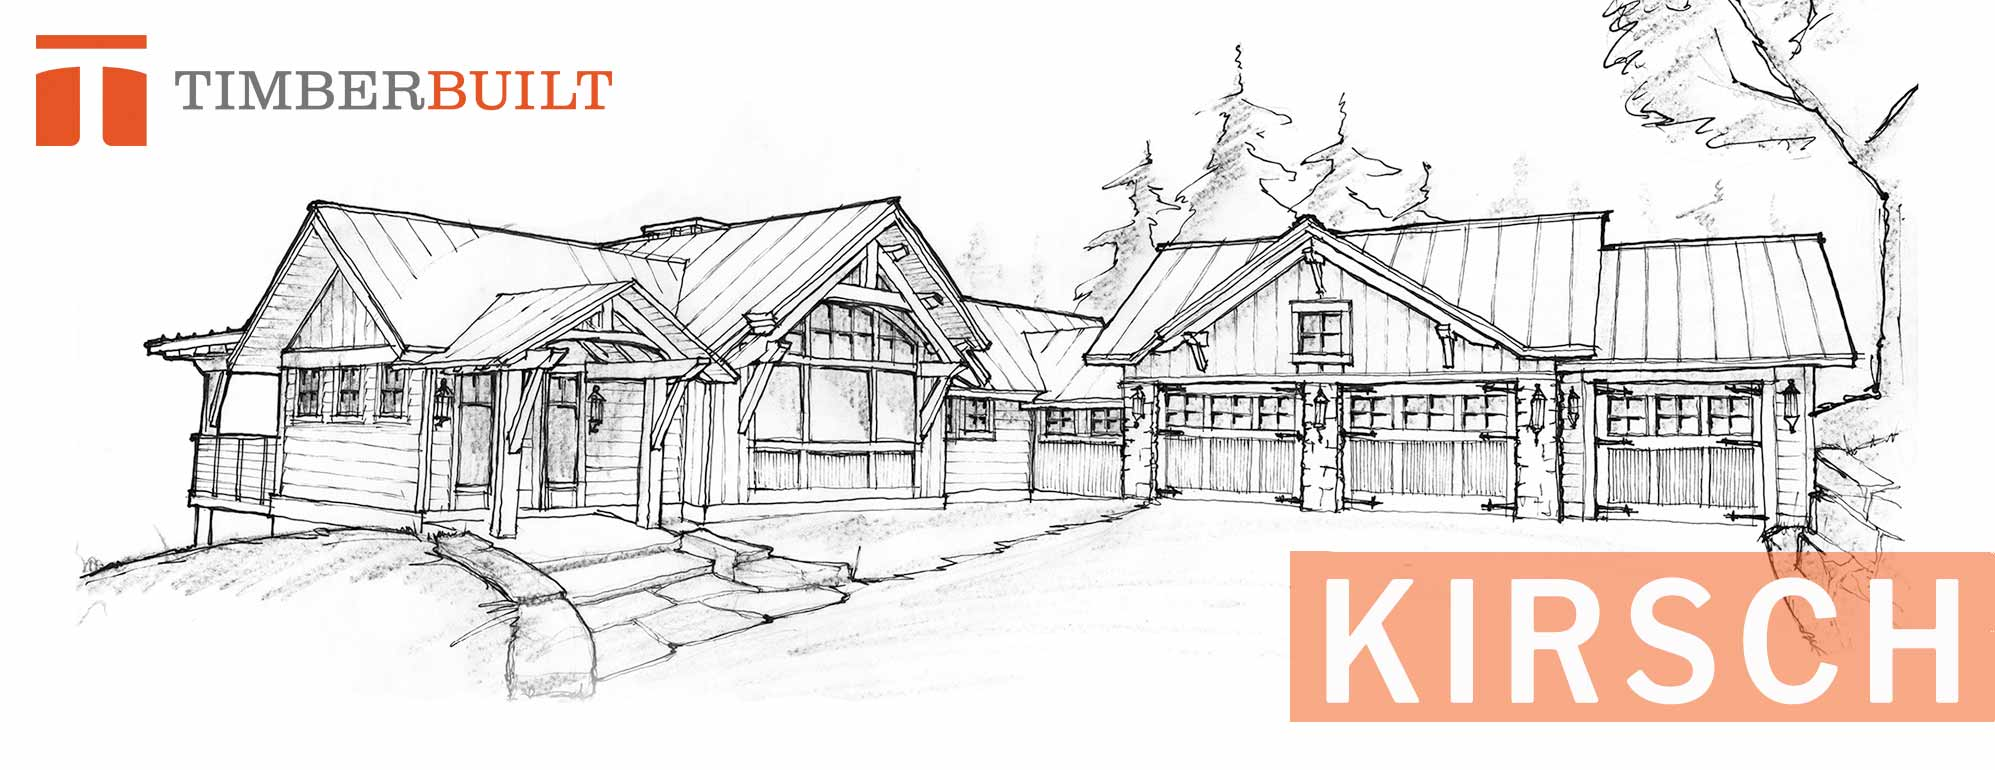 Timber frame home designs kirsch timberbuilt for Timber frame house plans designs